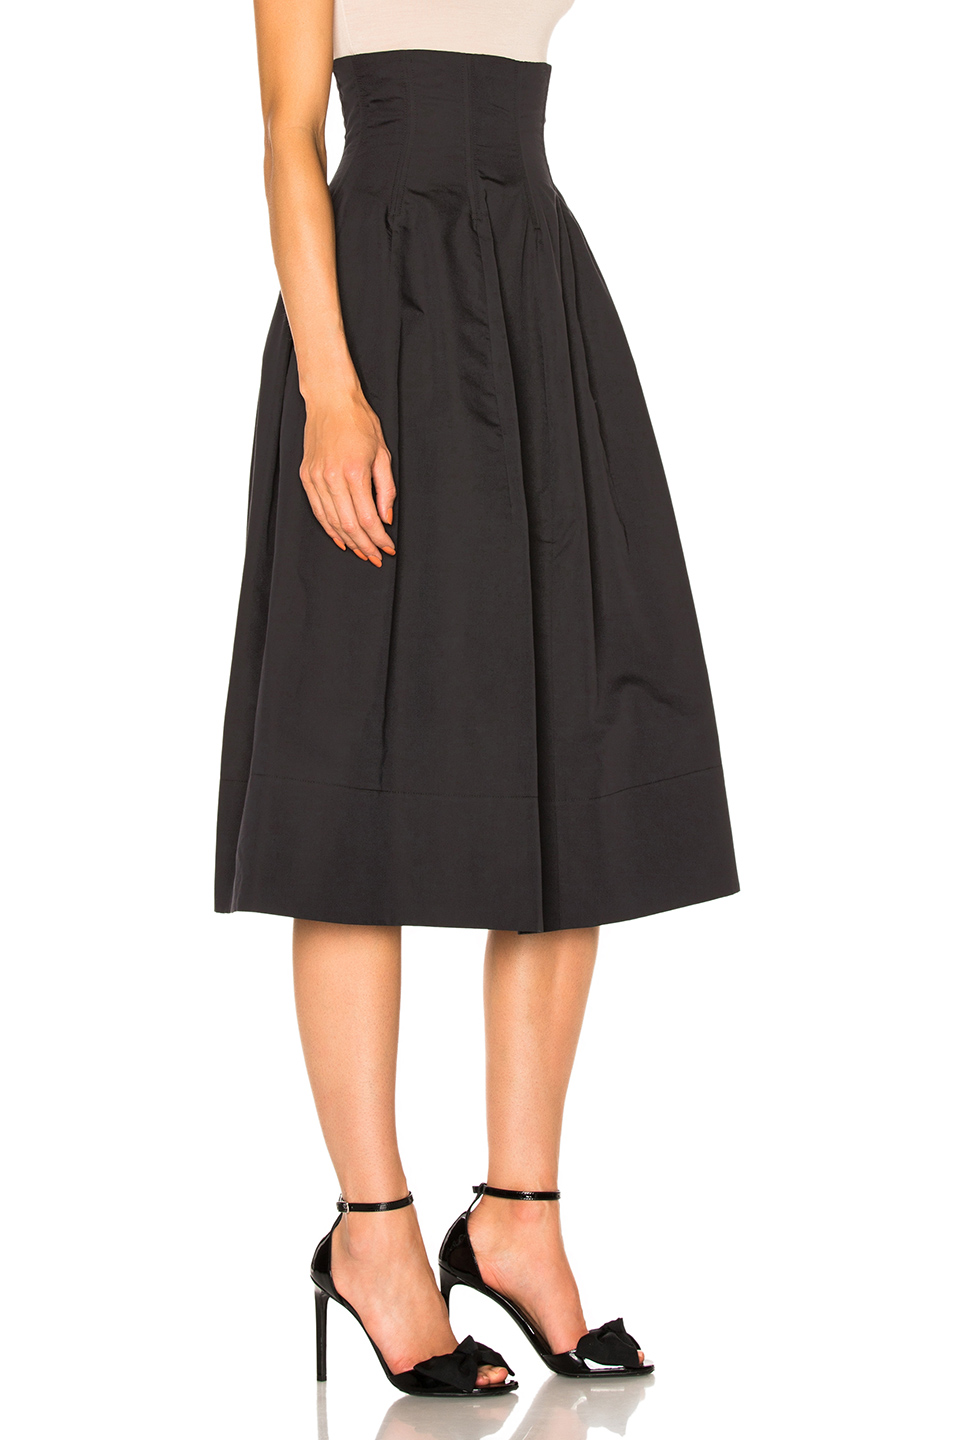 Brock Collection Sandra Skirt in Black | FWRD